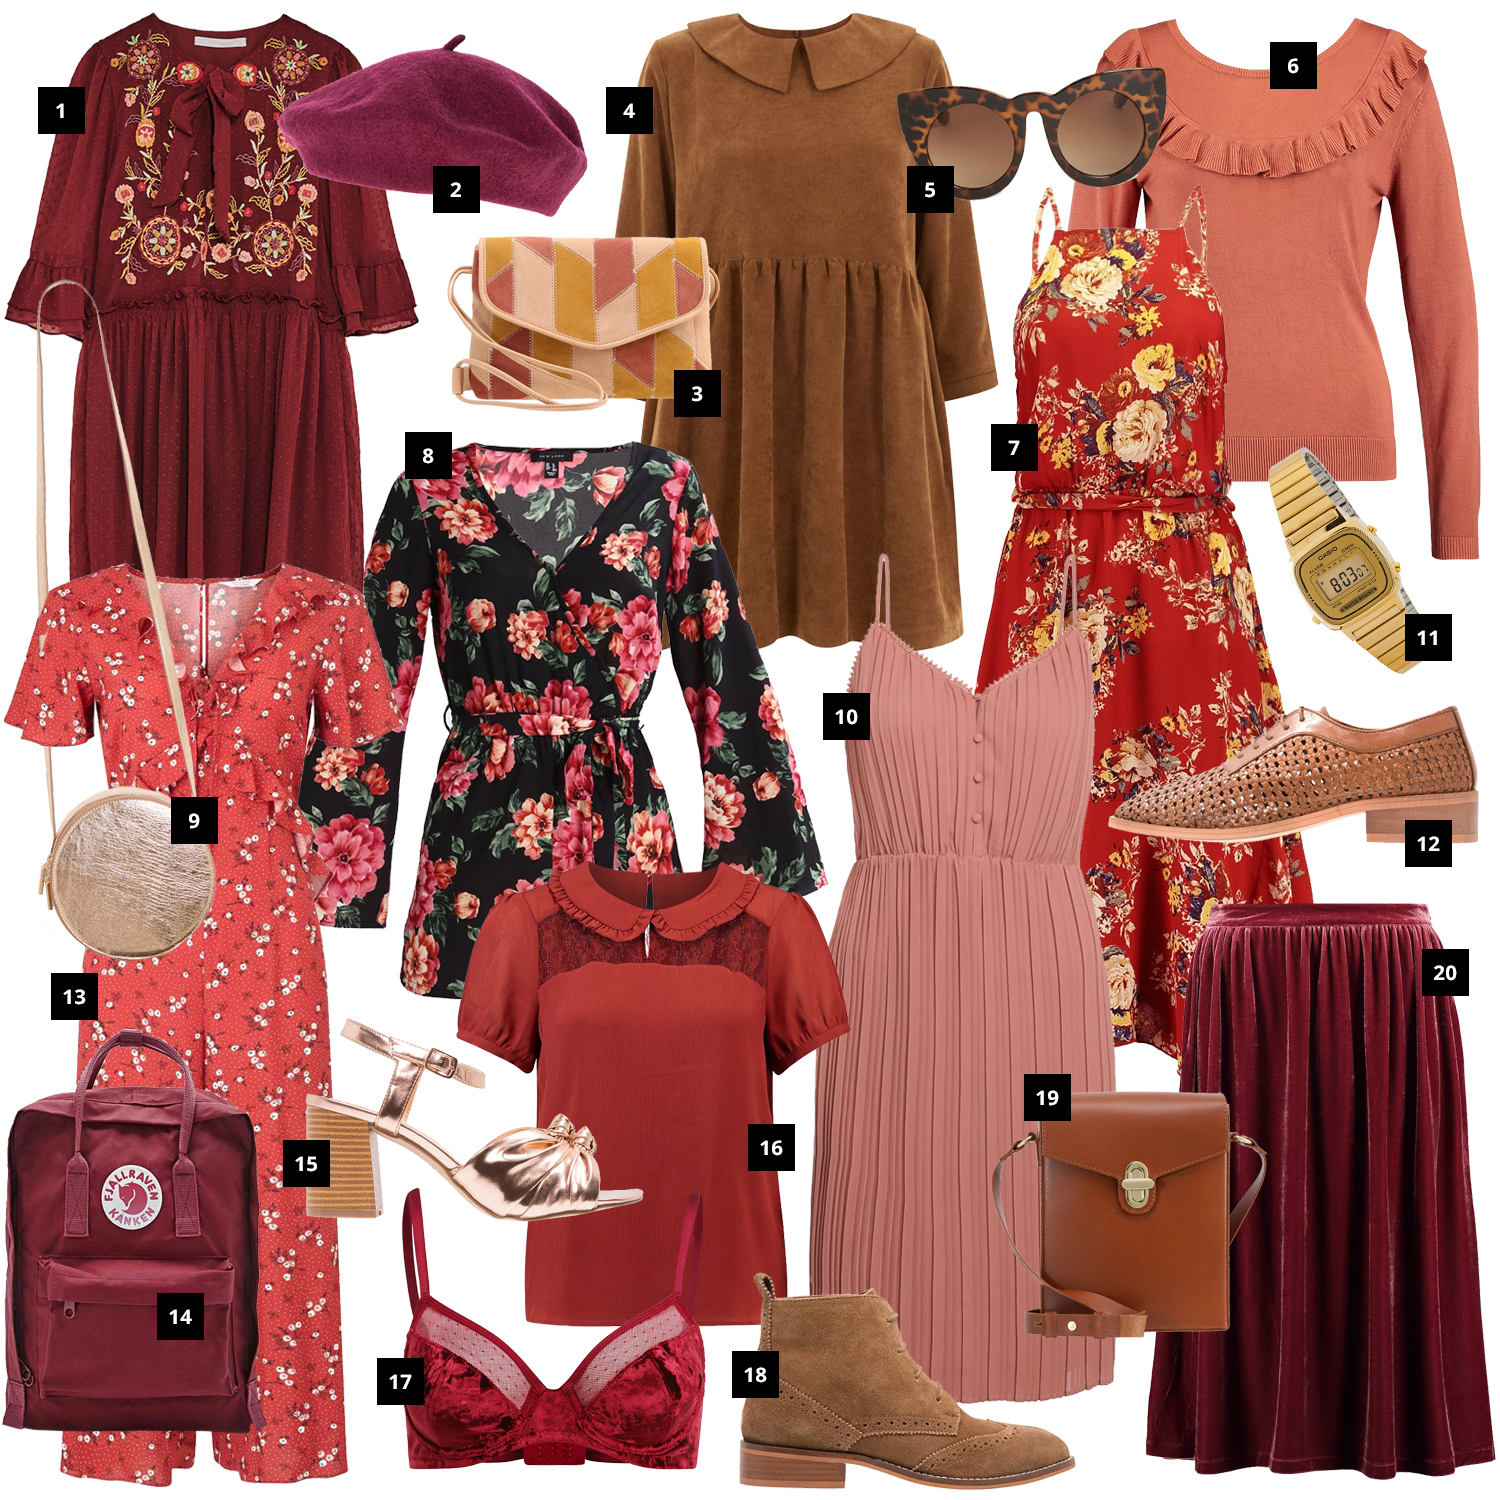 Retromantisch burgundy wishlist retro romantic look outfit dress fashion blog floral casio jumpsuit watch mint and berry zalando velvet fjallraven kanken